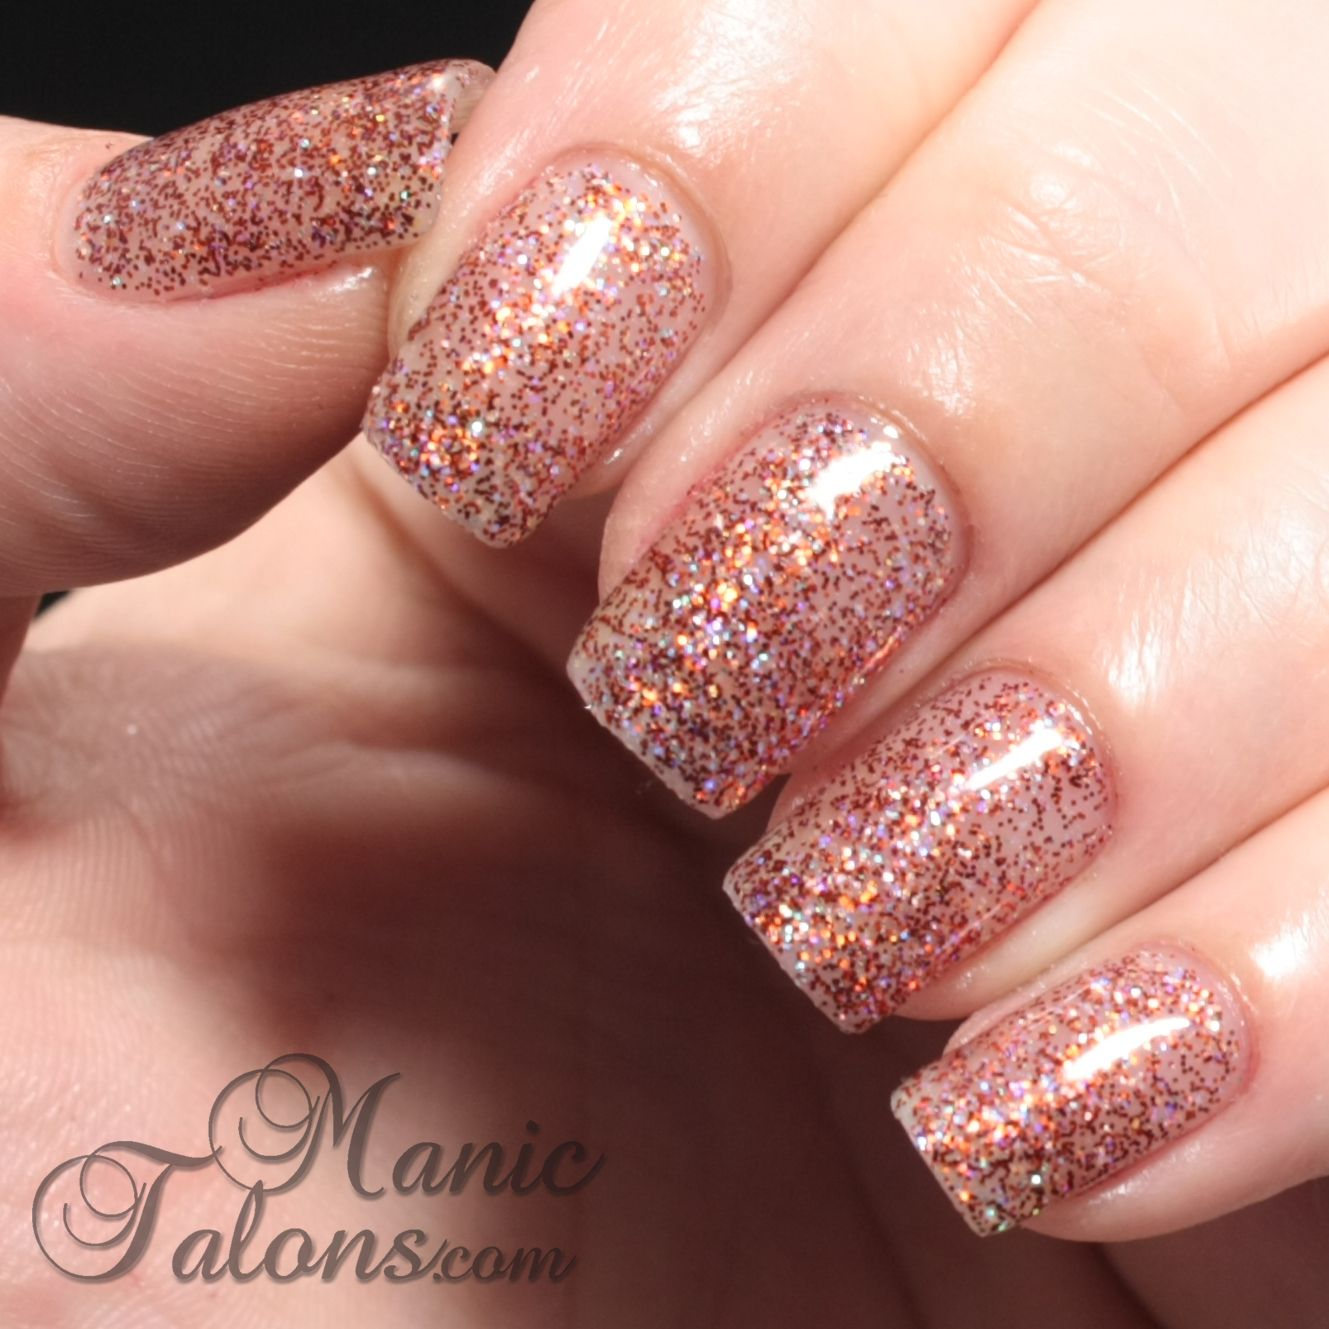 Manic Talons Gel Polish And Nail Art Blog Ibd Just Gel Polish Haute Frost Collection Swatches Pic Heavy Ibd Just Gel Polish Nail Art Blog Gel Polish